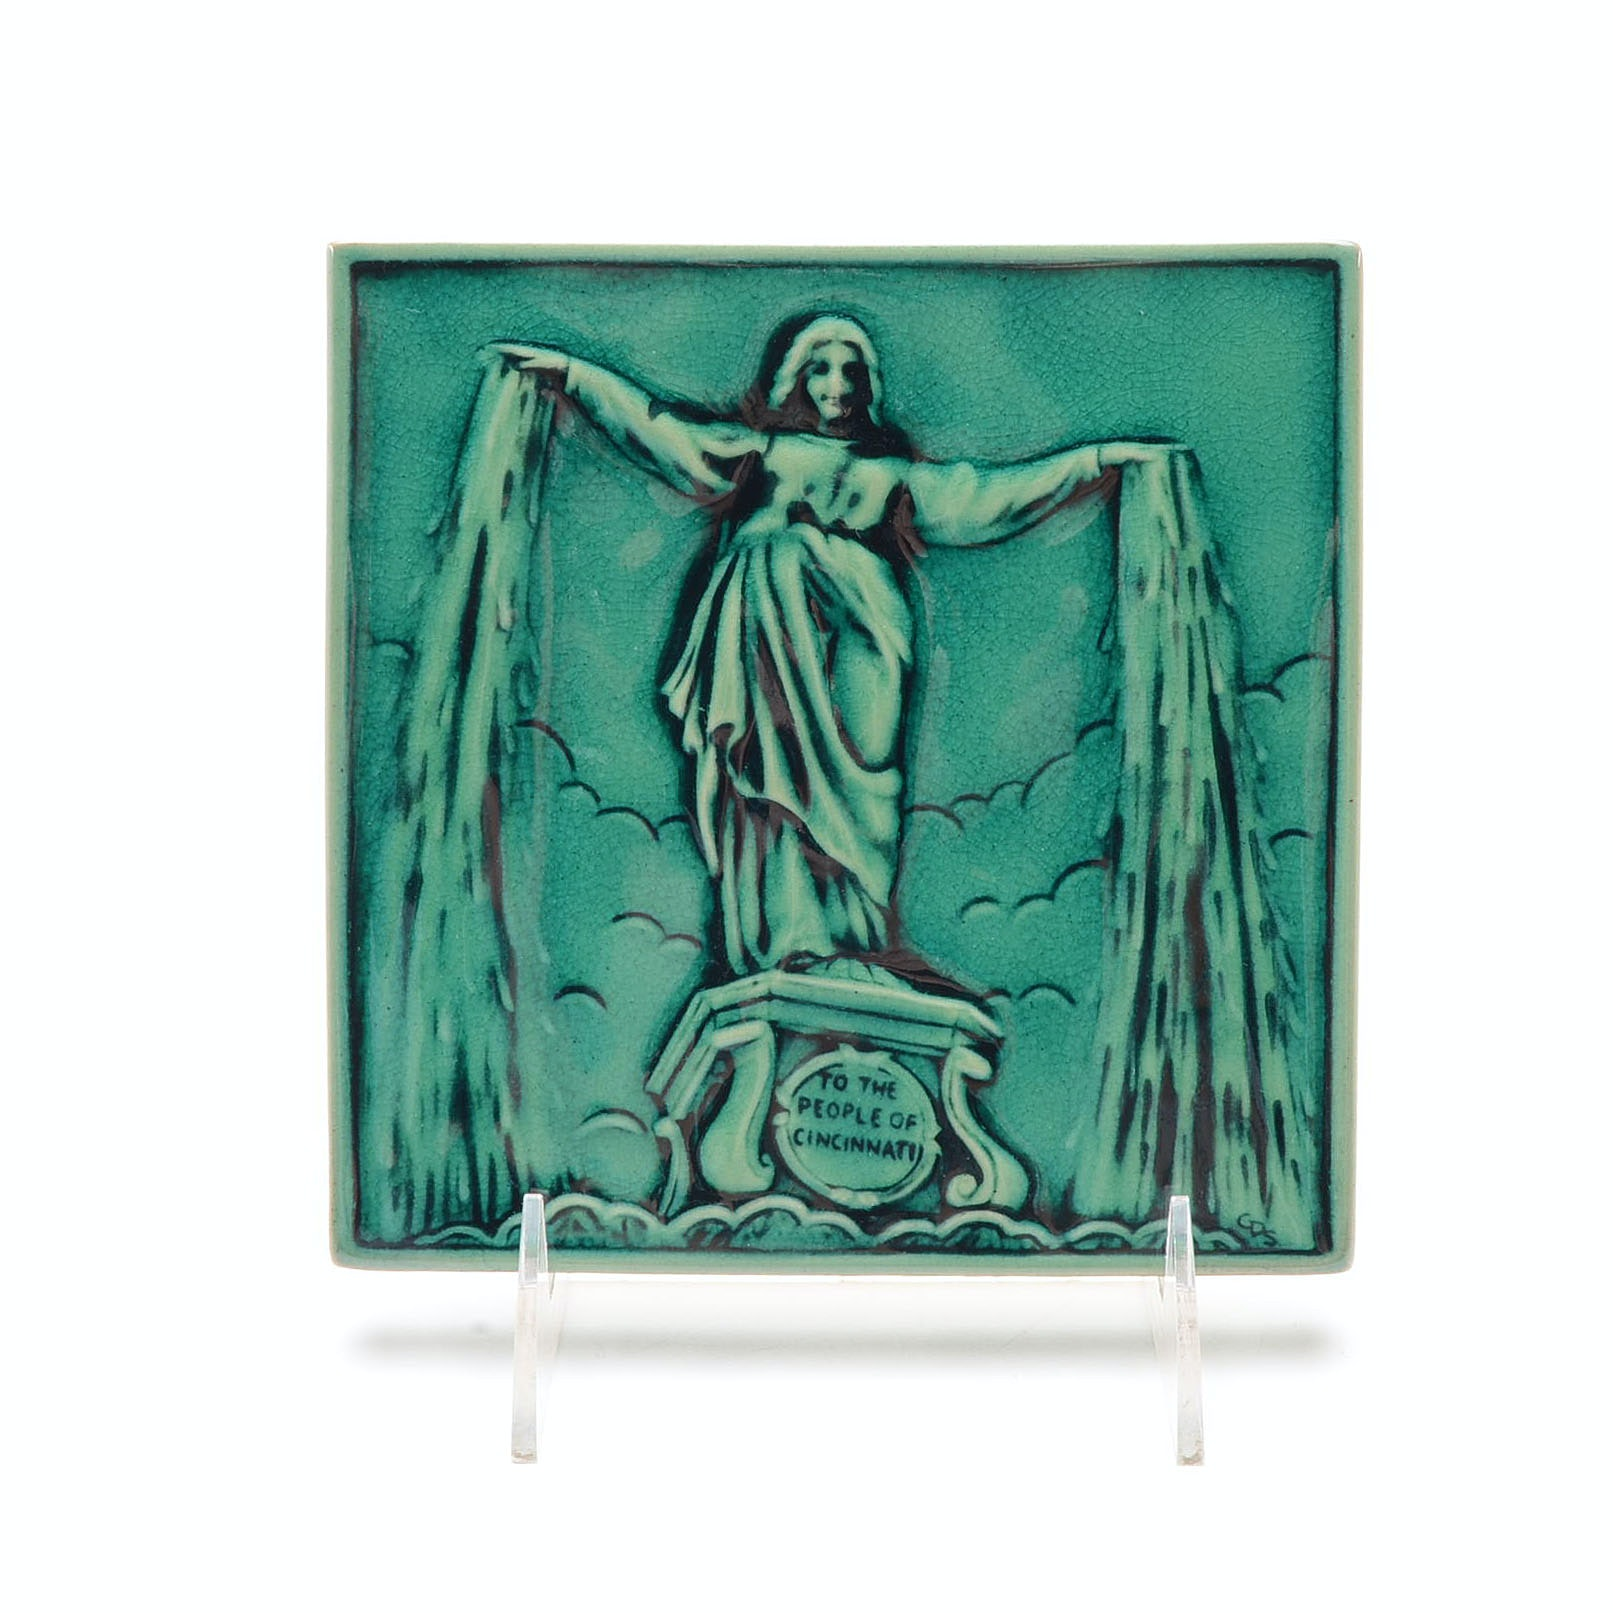 Rookwood Art Pottery Cincinnati Emerald Isle Fountain Square Tile